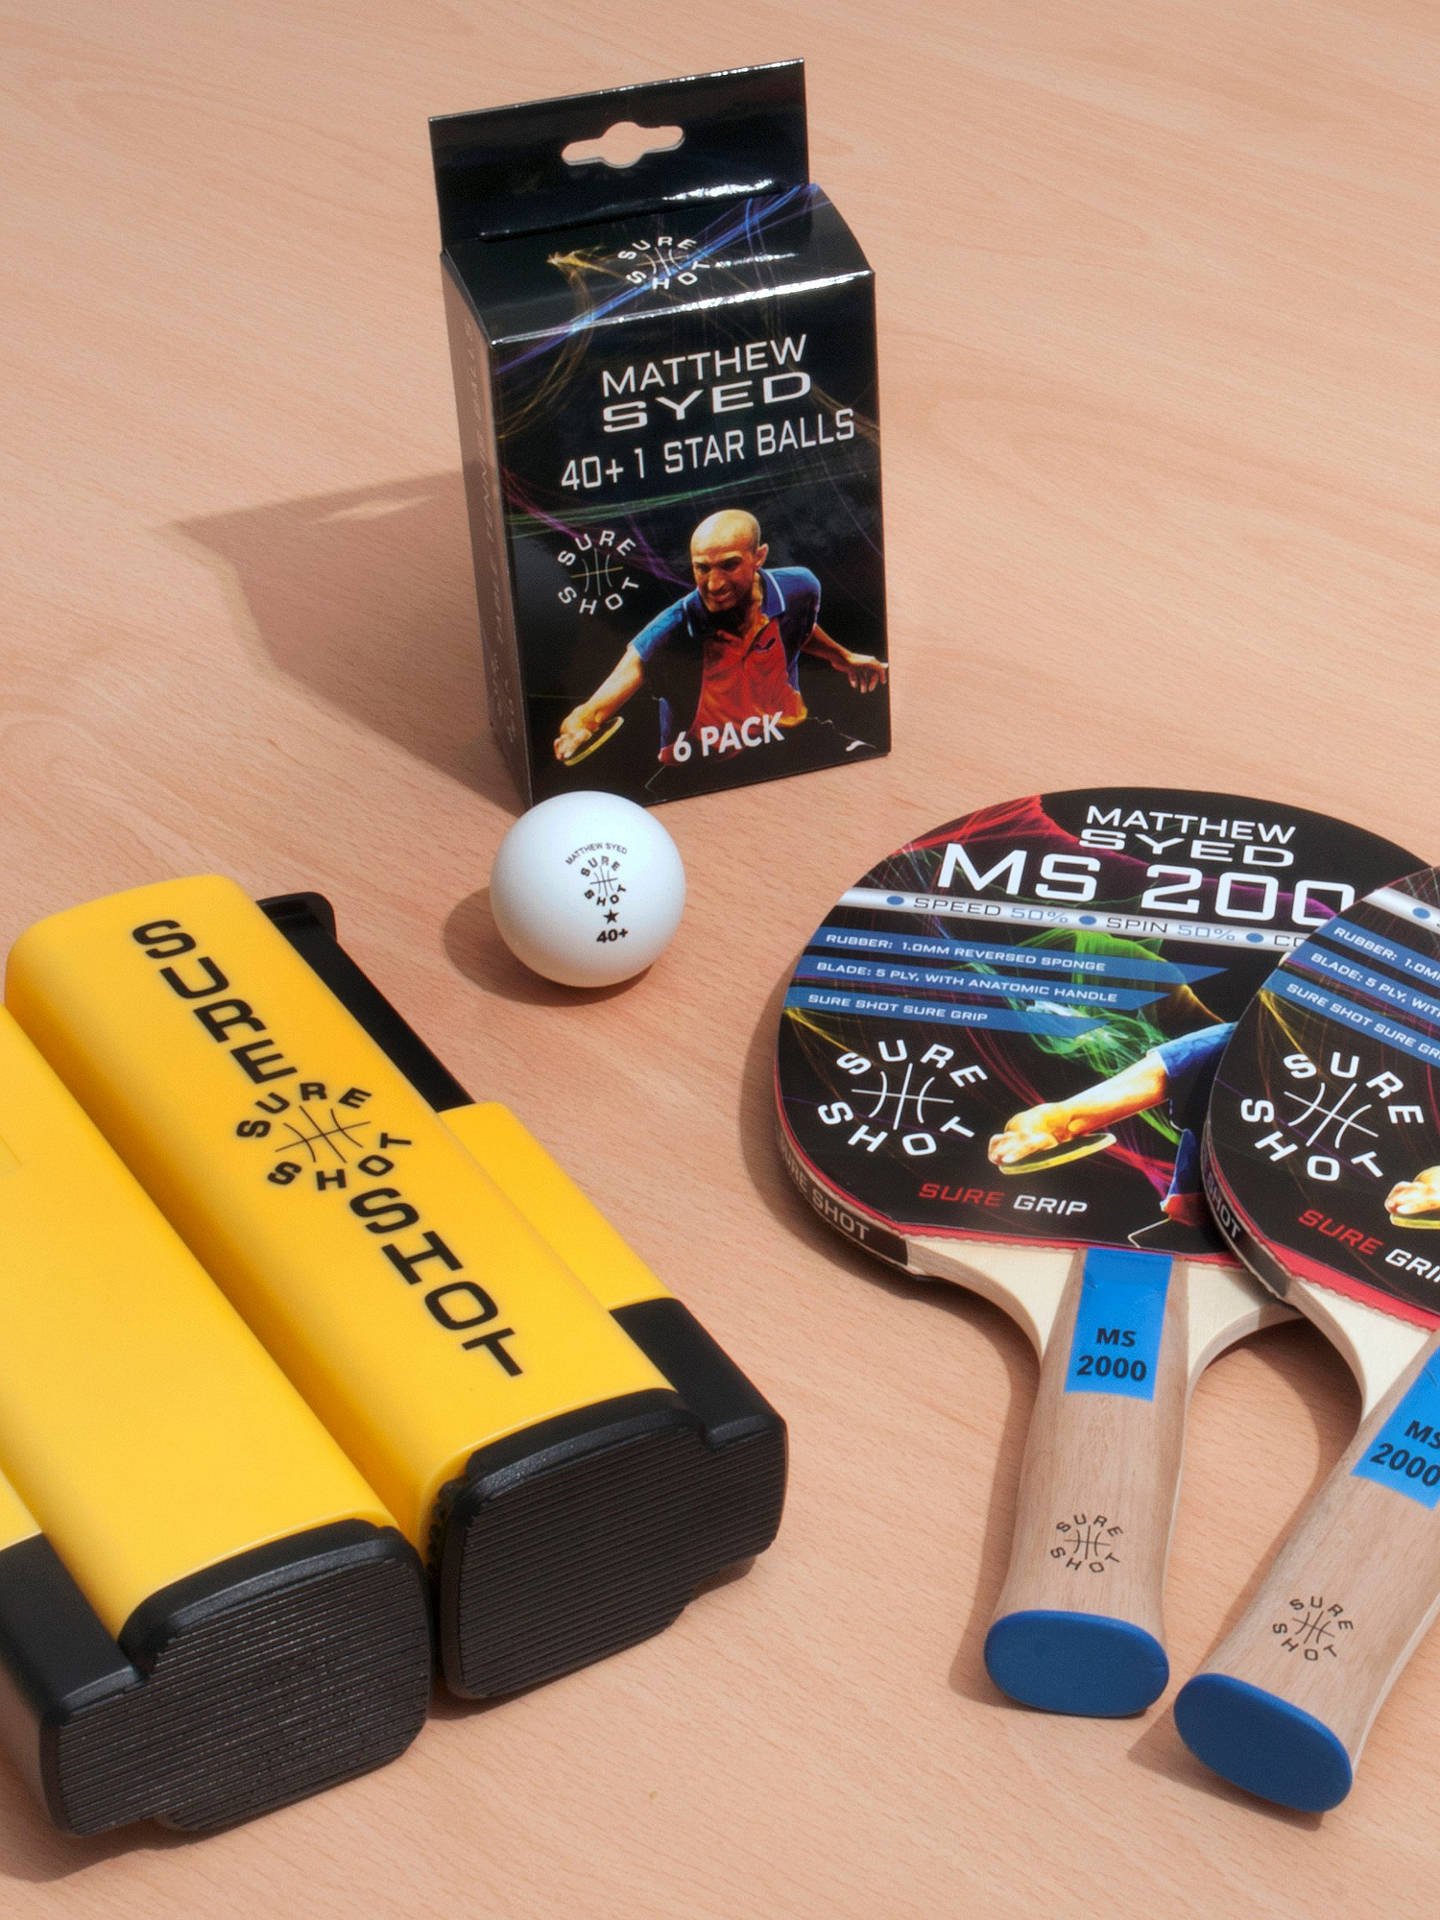 bacf0ab3681 Buy Butterfly Sure Shot Matthew Syed Table Tennis Set Online at  johnlewis.com ...